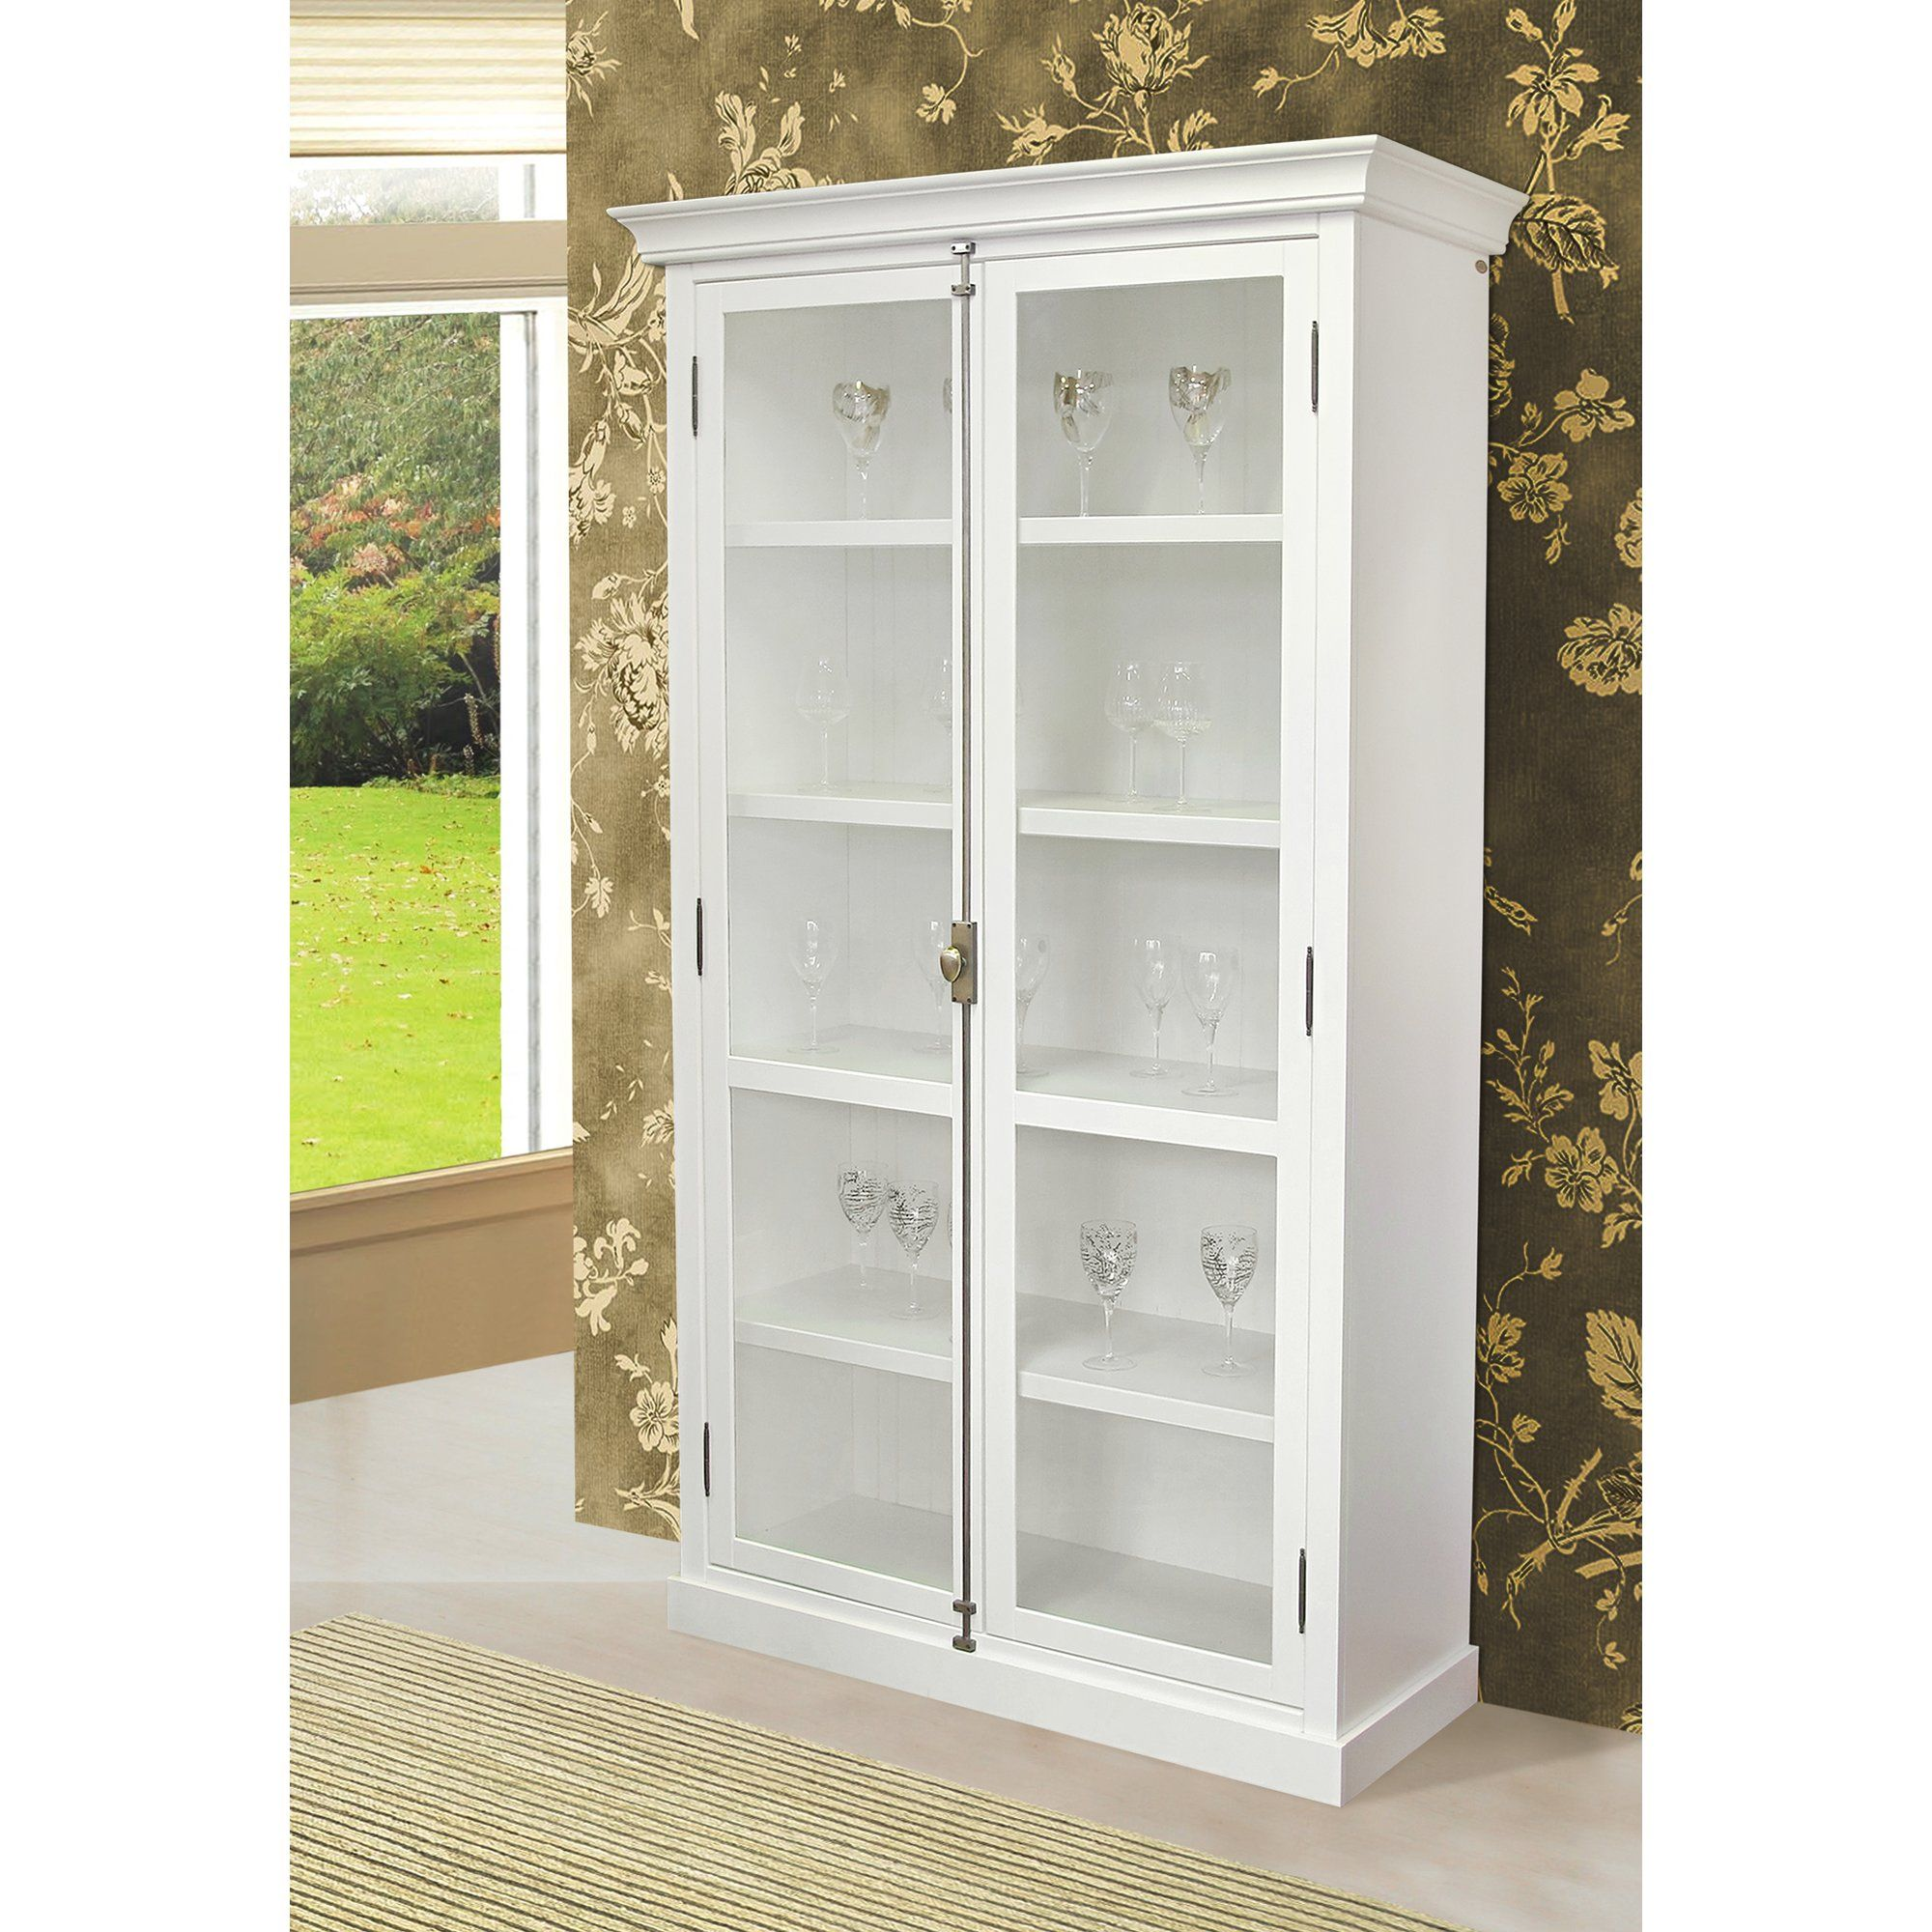 Cast Display Cabinet White Display Cabinet Display Cabinet Corner Display Cabinet